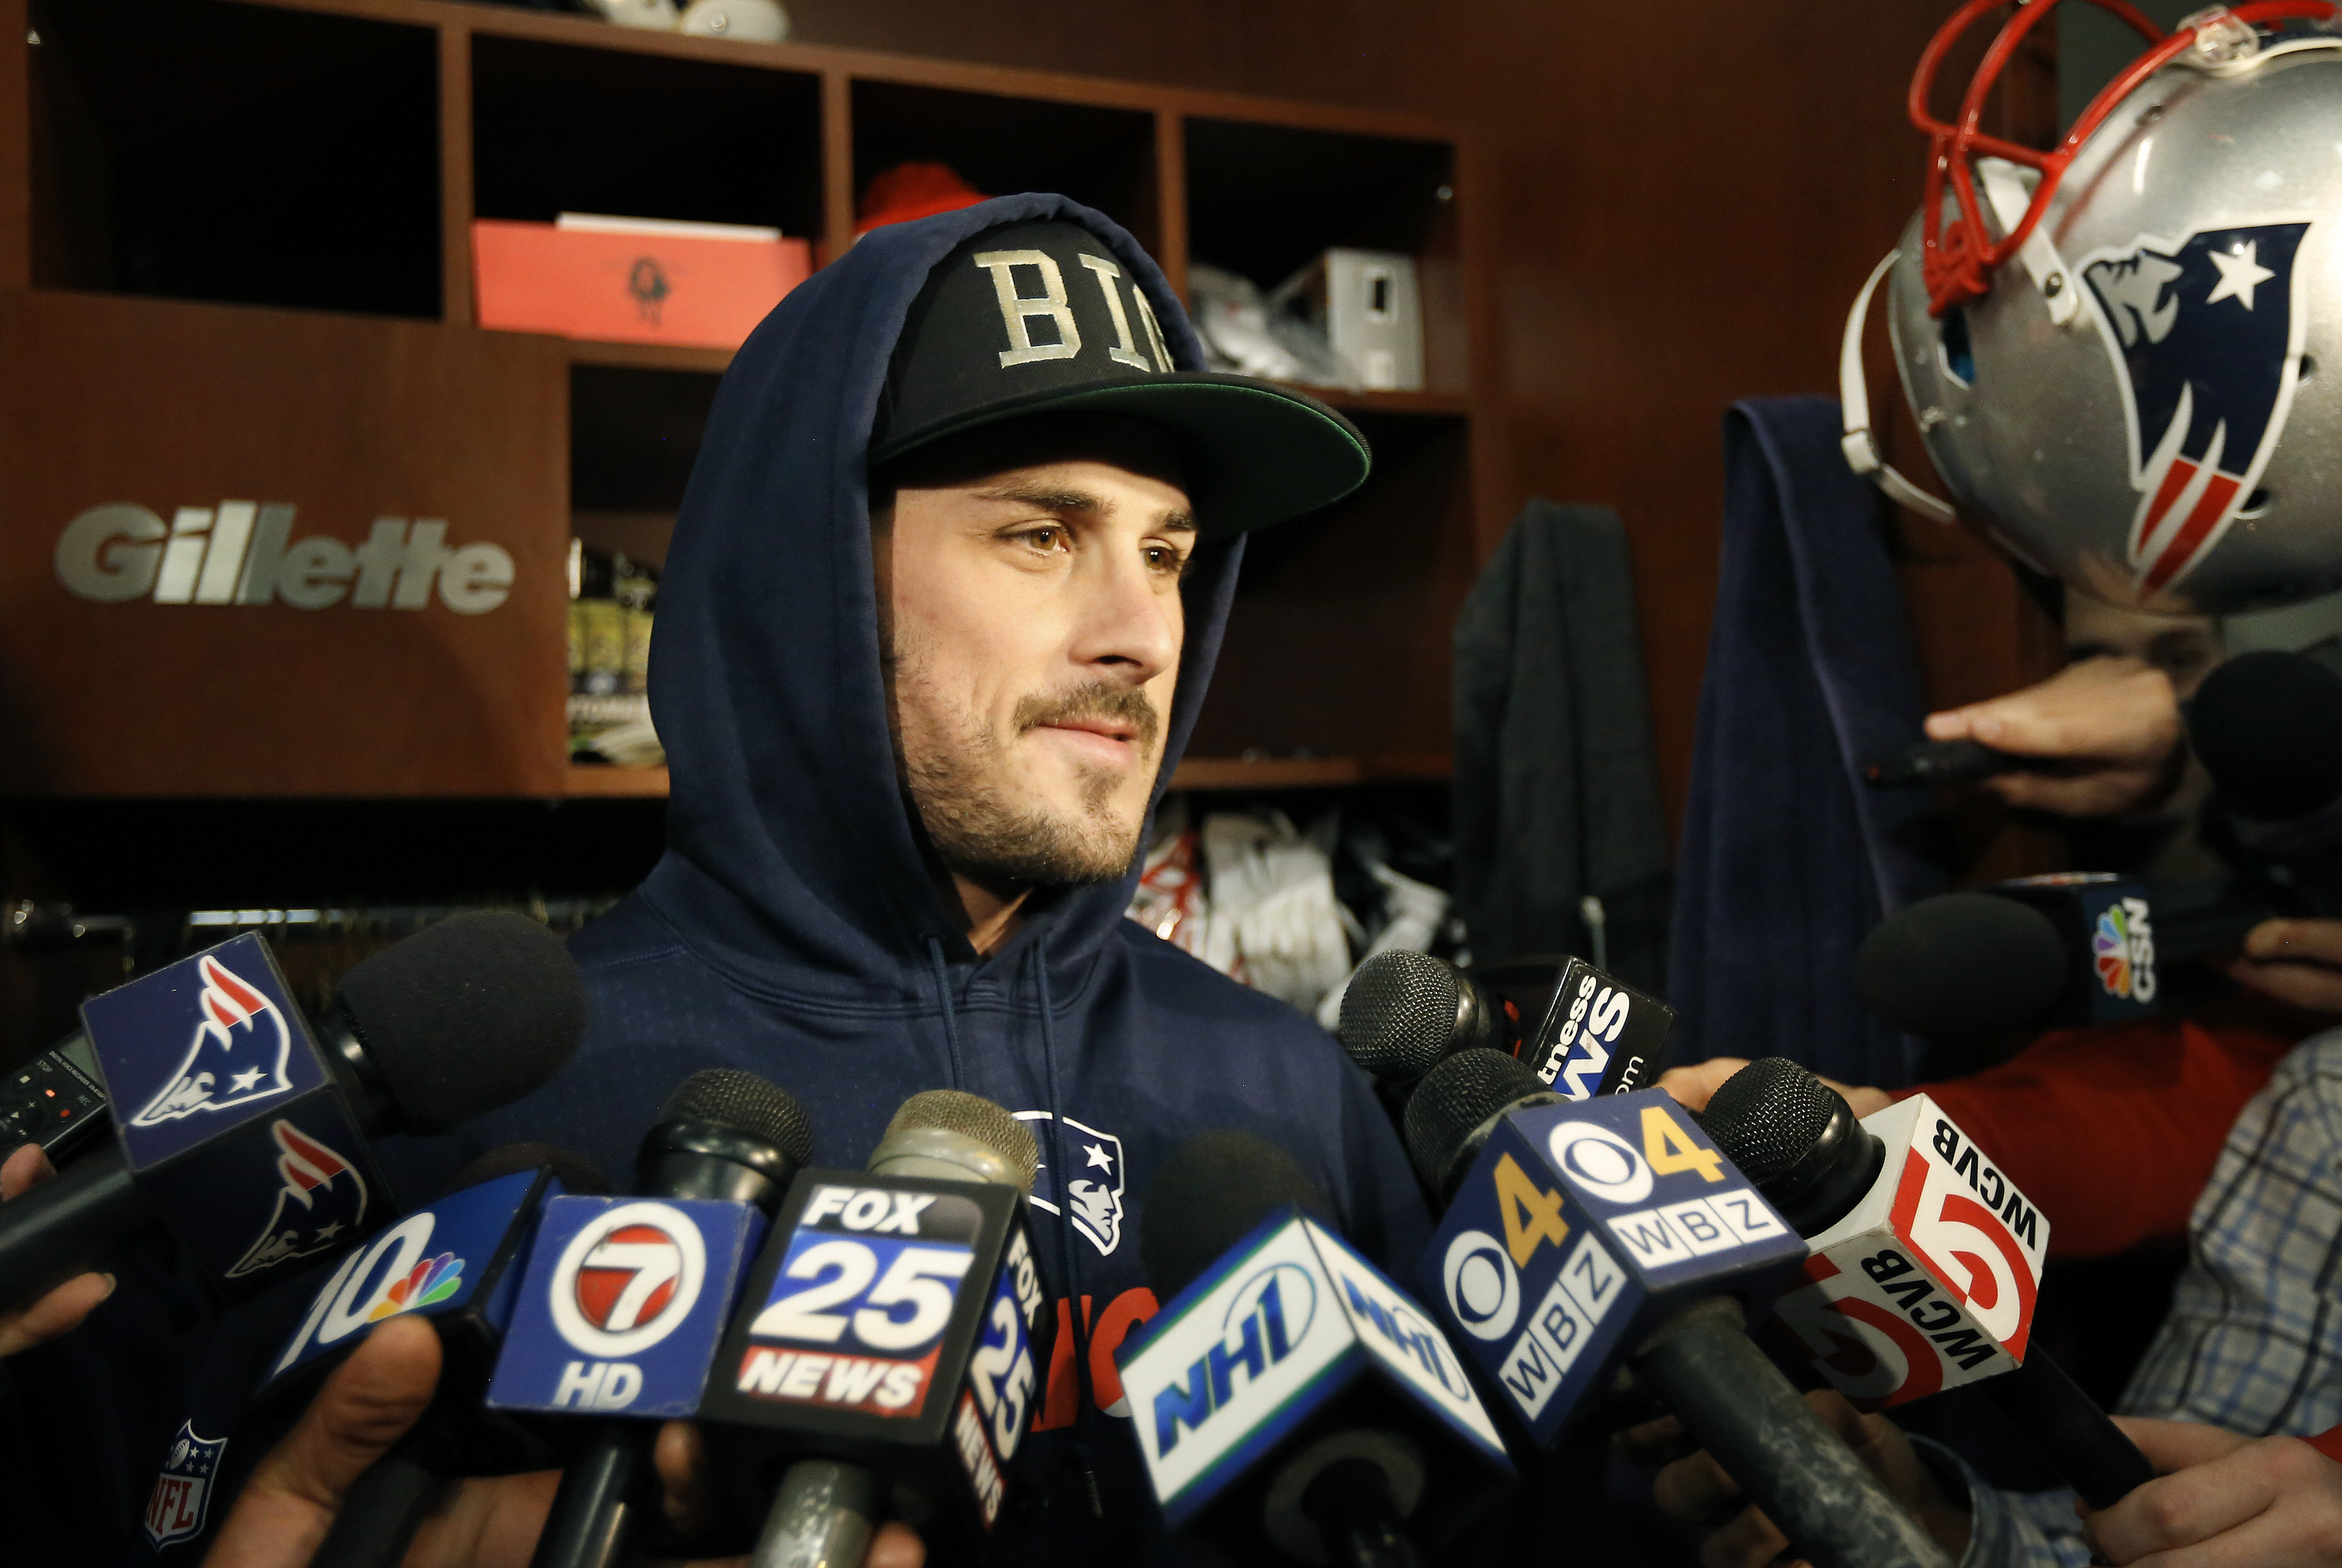 New England Patriots wide receiver Danny Amendola speaks with reporters in the team's locker room at Gillette Stadium before an NFL football practice, Wednesday, Dec. 23, 2015, in Foxborough, Mass. The Patriots are to play the New York Jets Sunday, Dec. 2